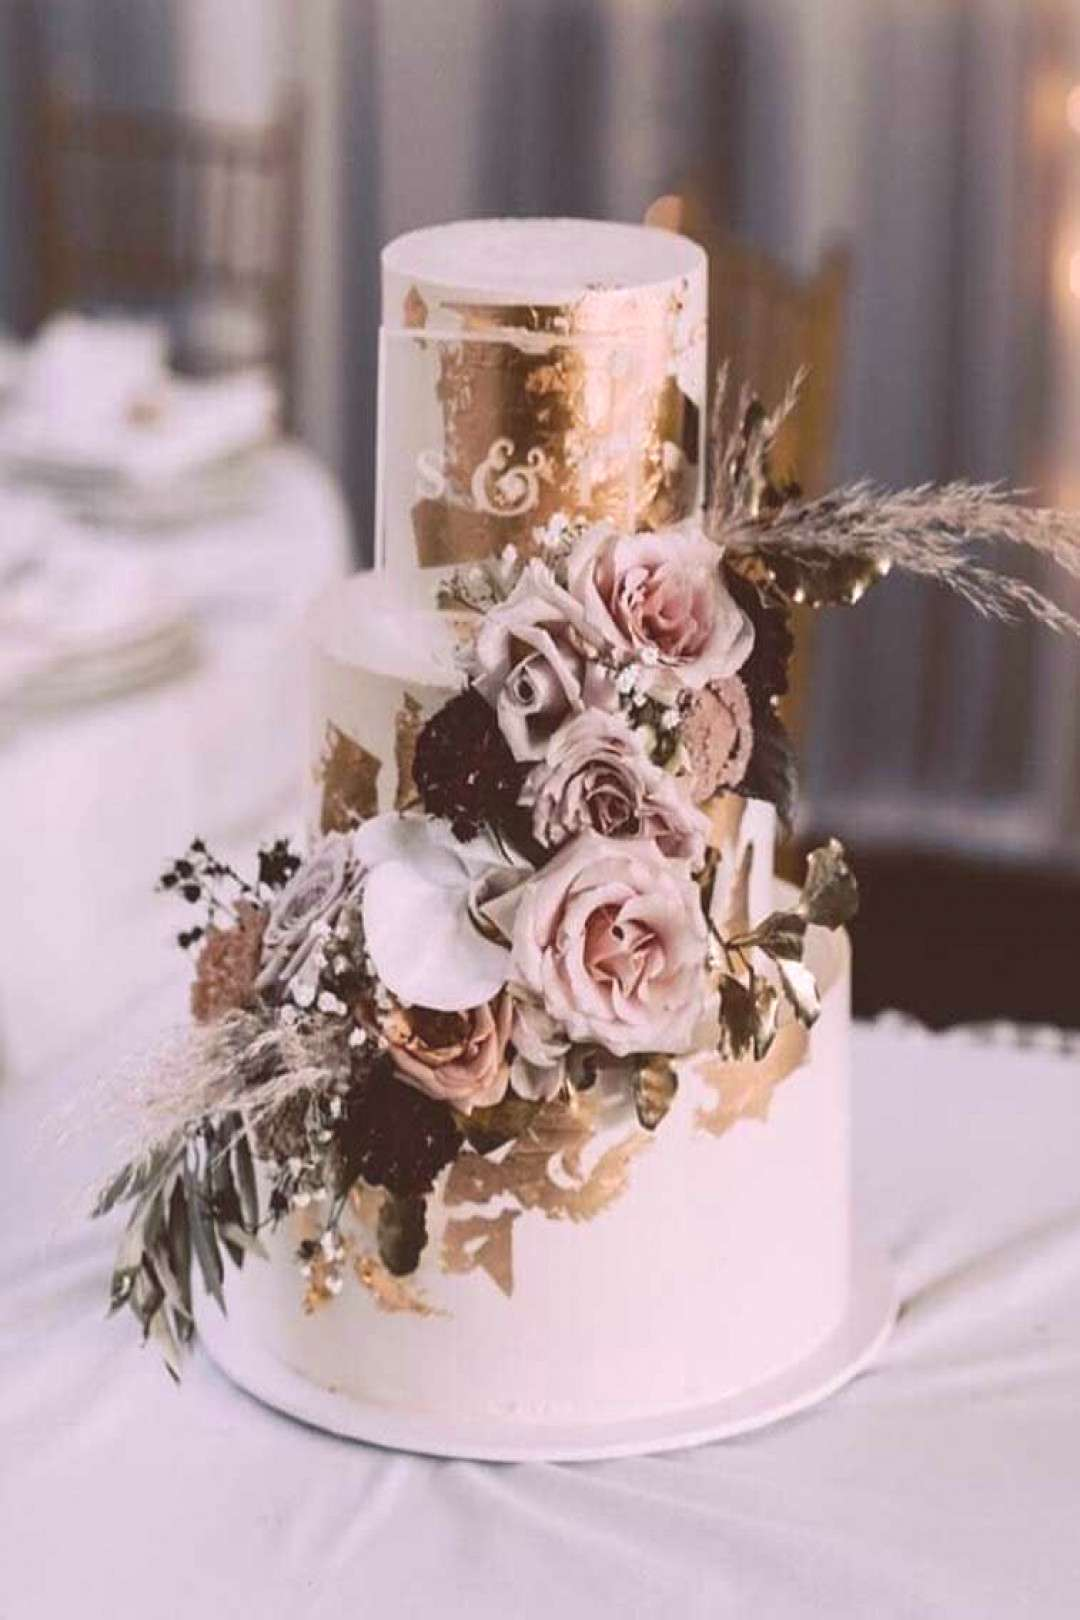 wedding cakes black Need some inspiration for yourcakedesignCheck out our bestwedding cakeideas to